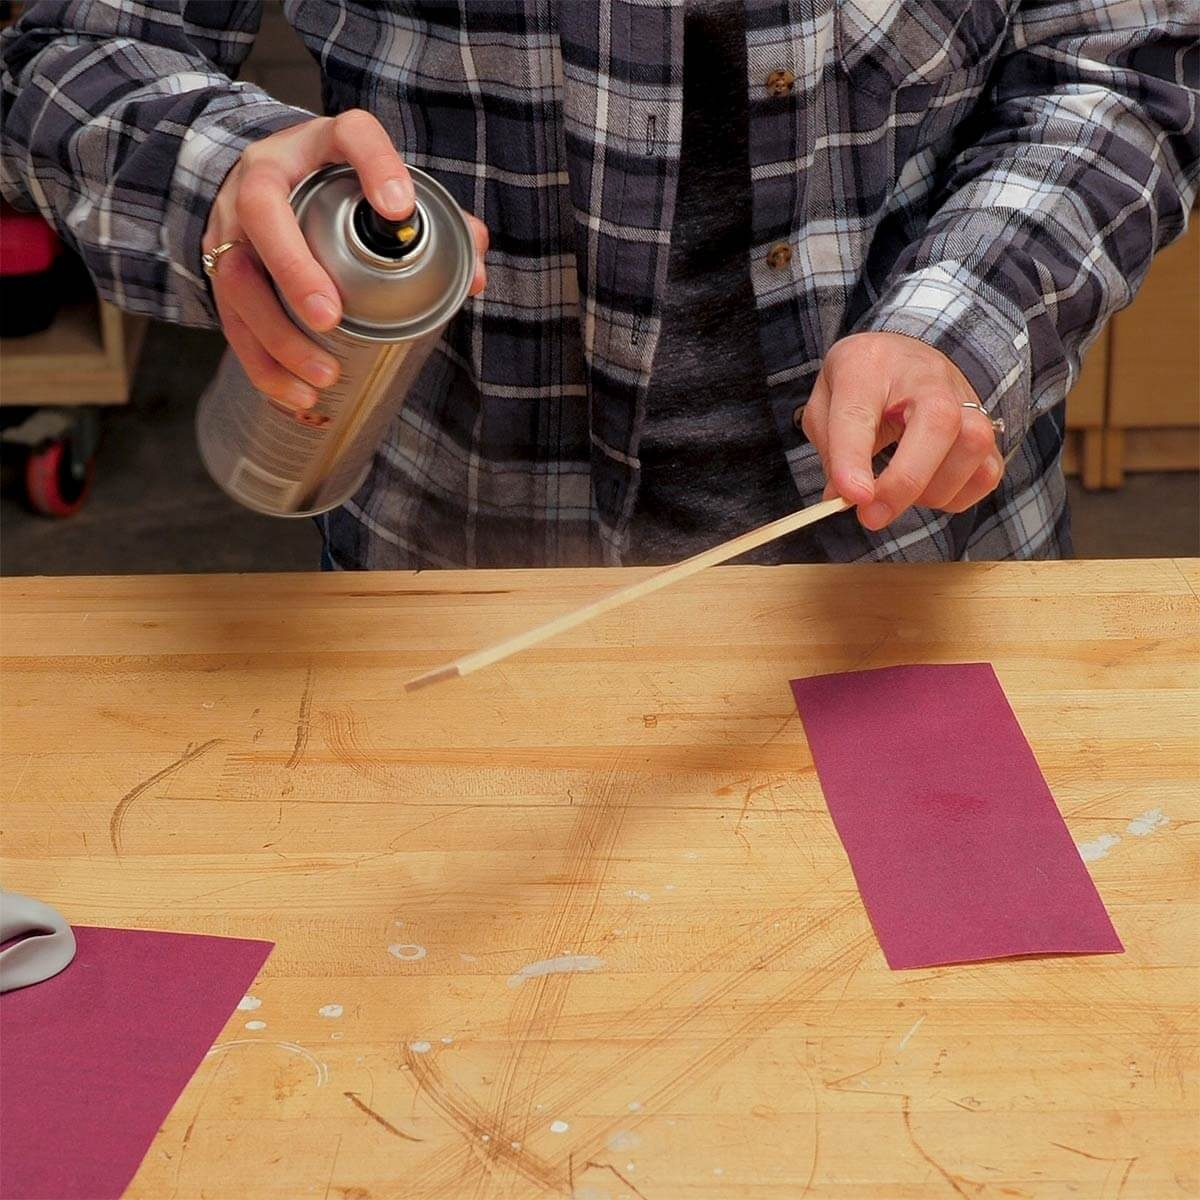 gluing sandpaper to paint stick